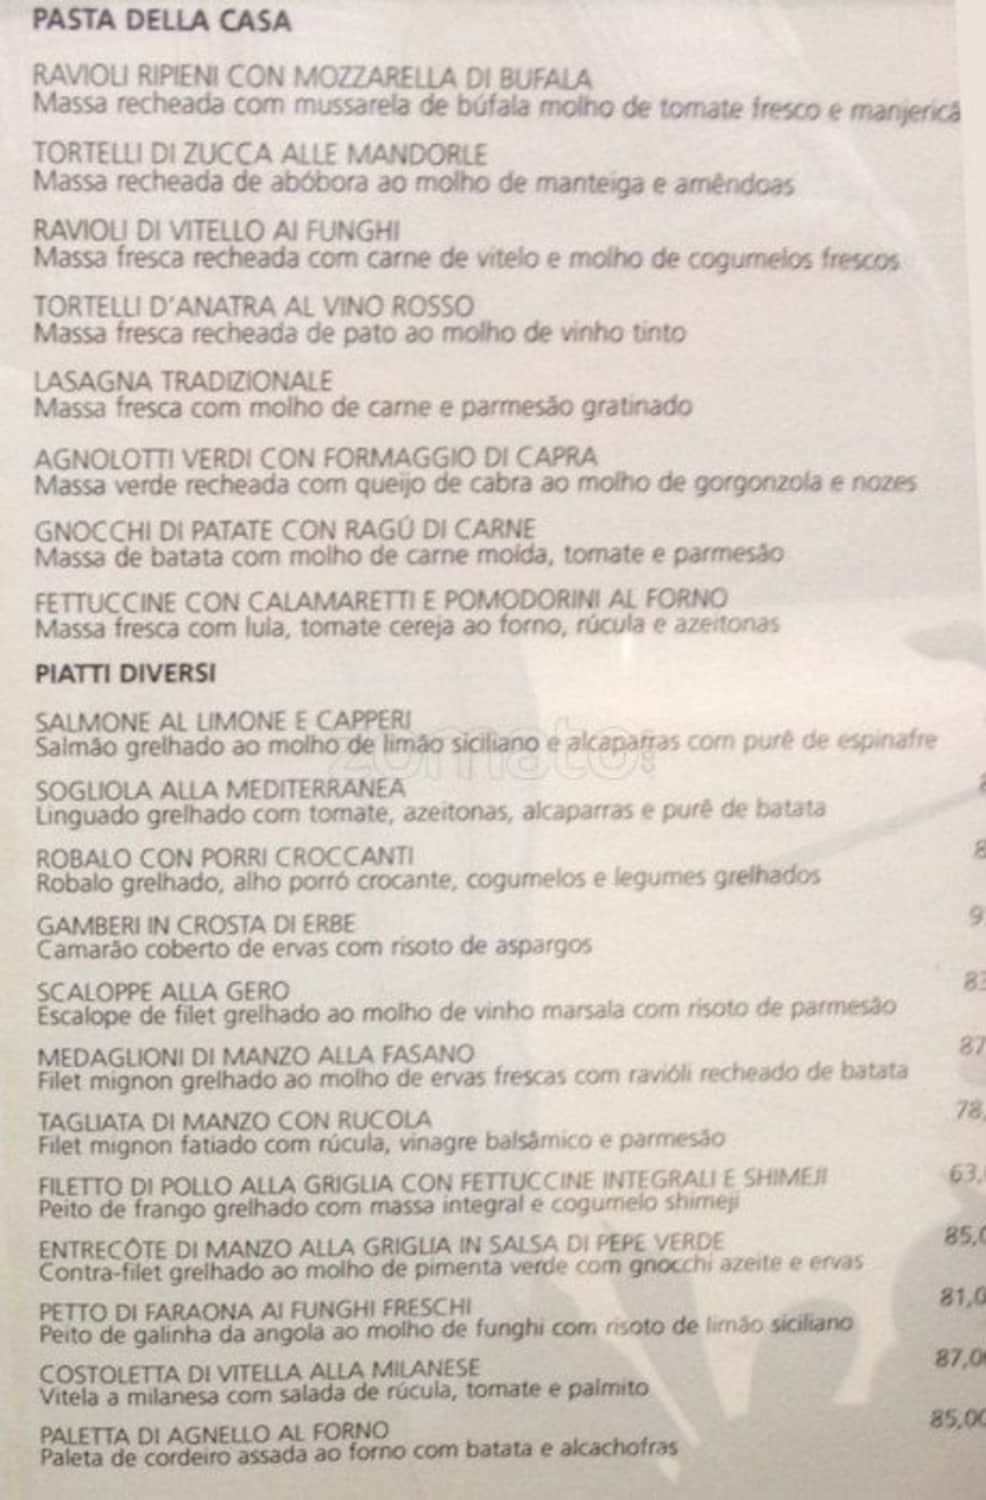 Menu do restaurante Gero Trattoria - Página 1